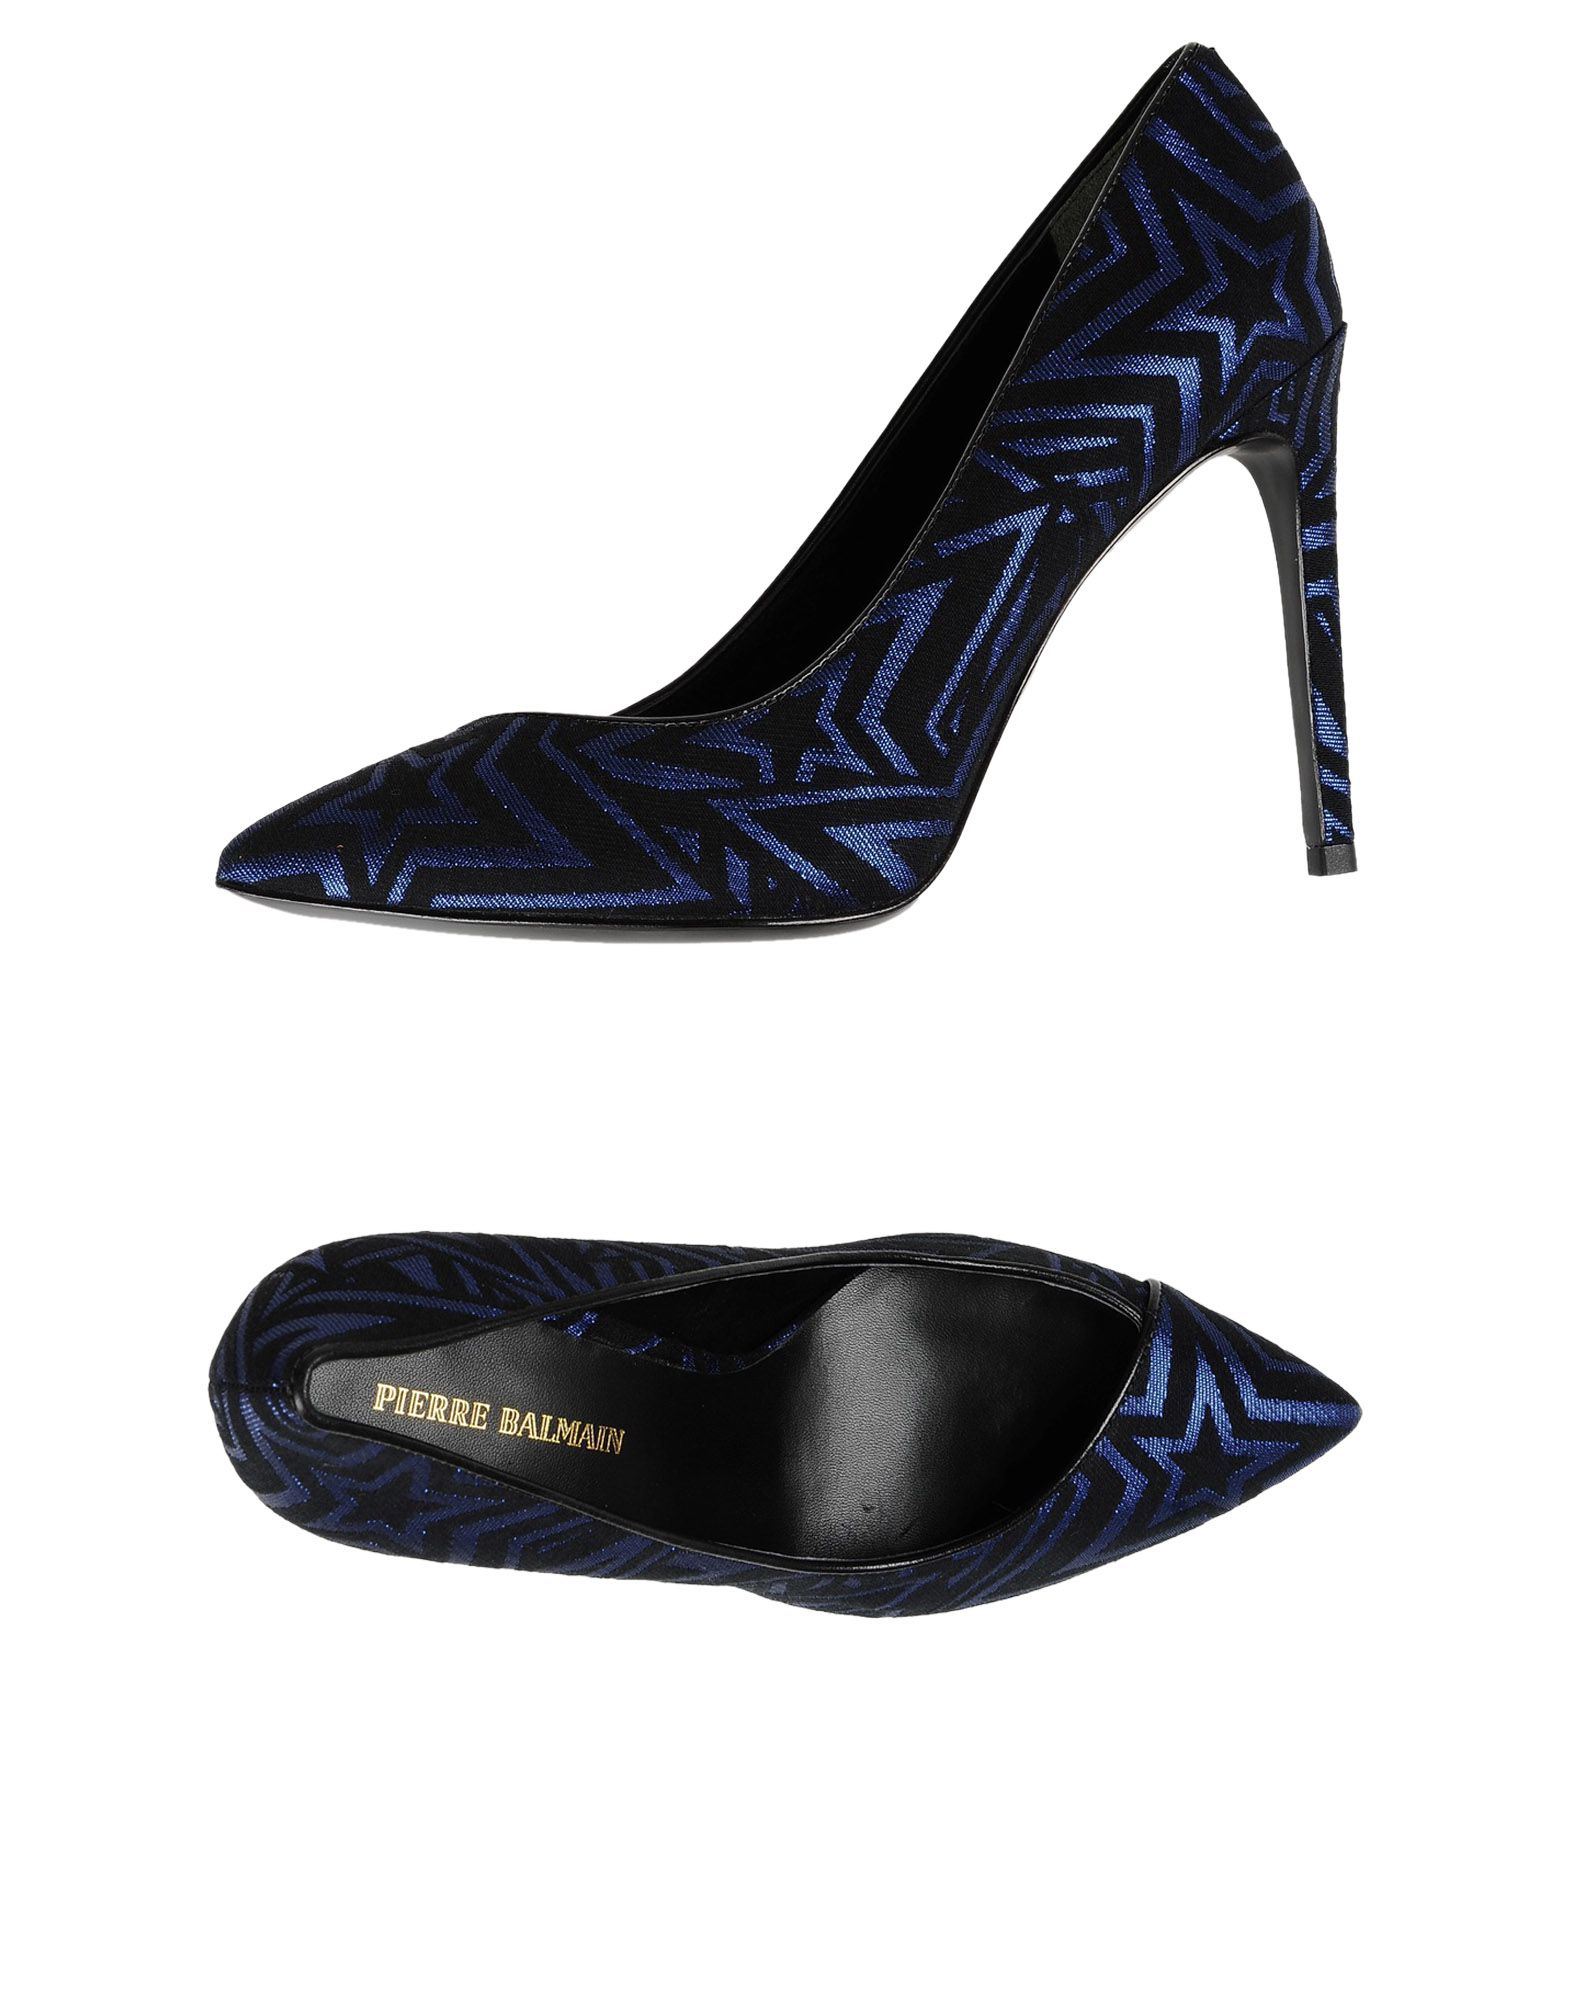 Pierre Balmain Women - shop online shoes, bags, handbags and more at YOOX  United States